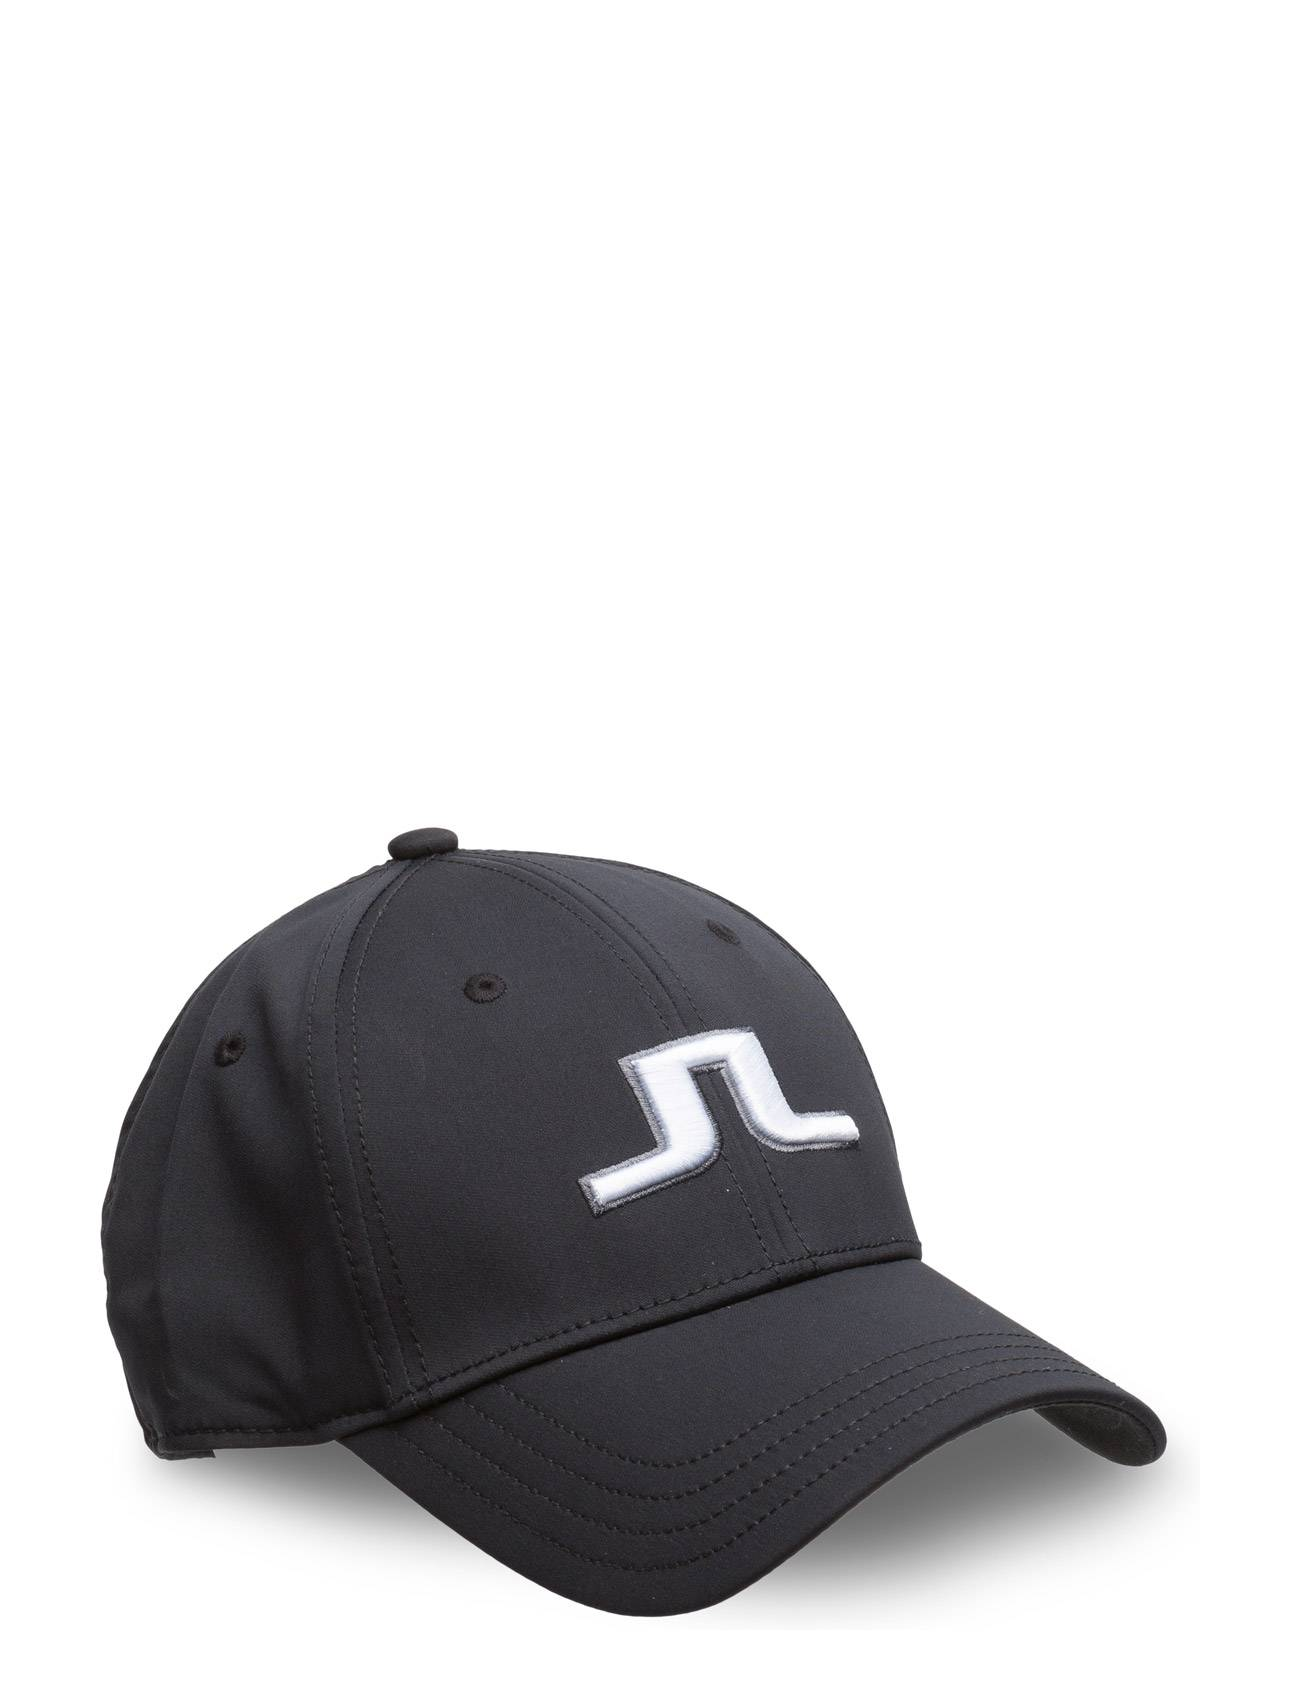 J. Lindeberg Golf Angus Tech Stretch Cap